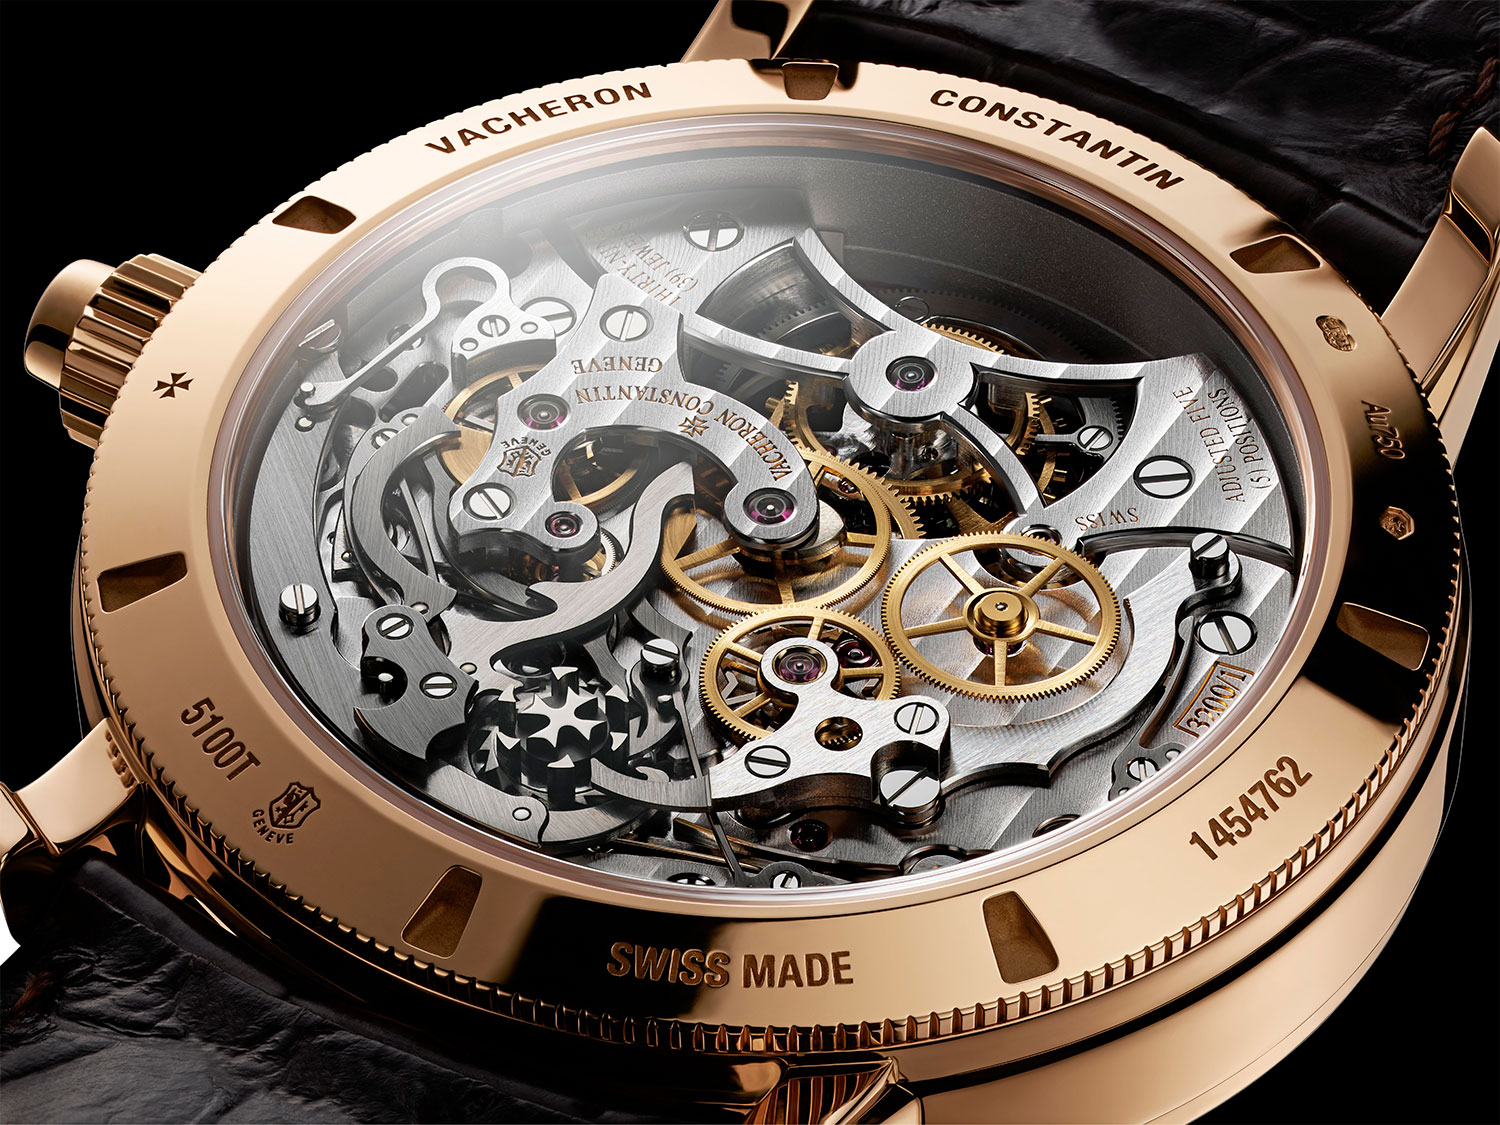 Calibre 3200 del Vacheron Constantin Traditionnelle Chronograph Tourbillon